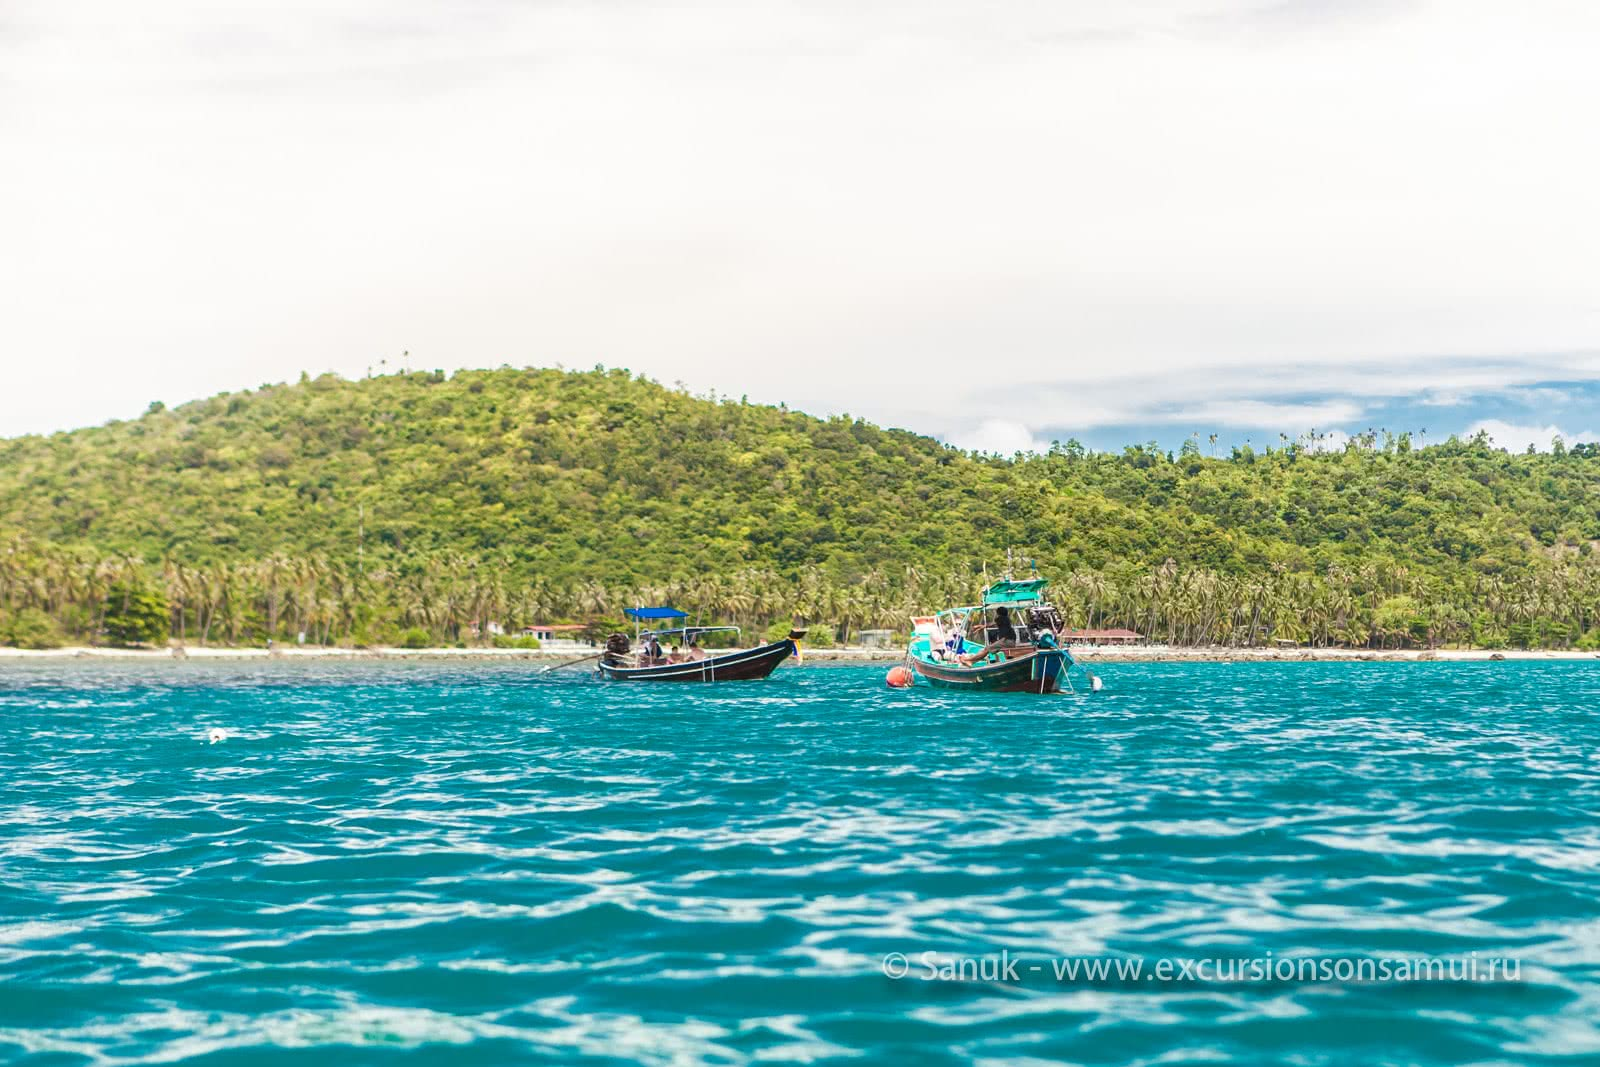 Snorkeling and fishing in the waters of Koh Tan, Koh Samui, Thailand